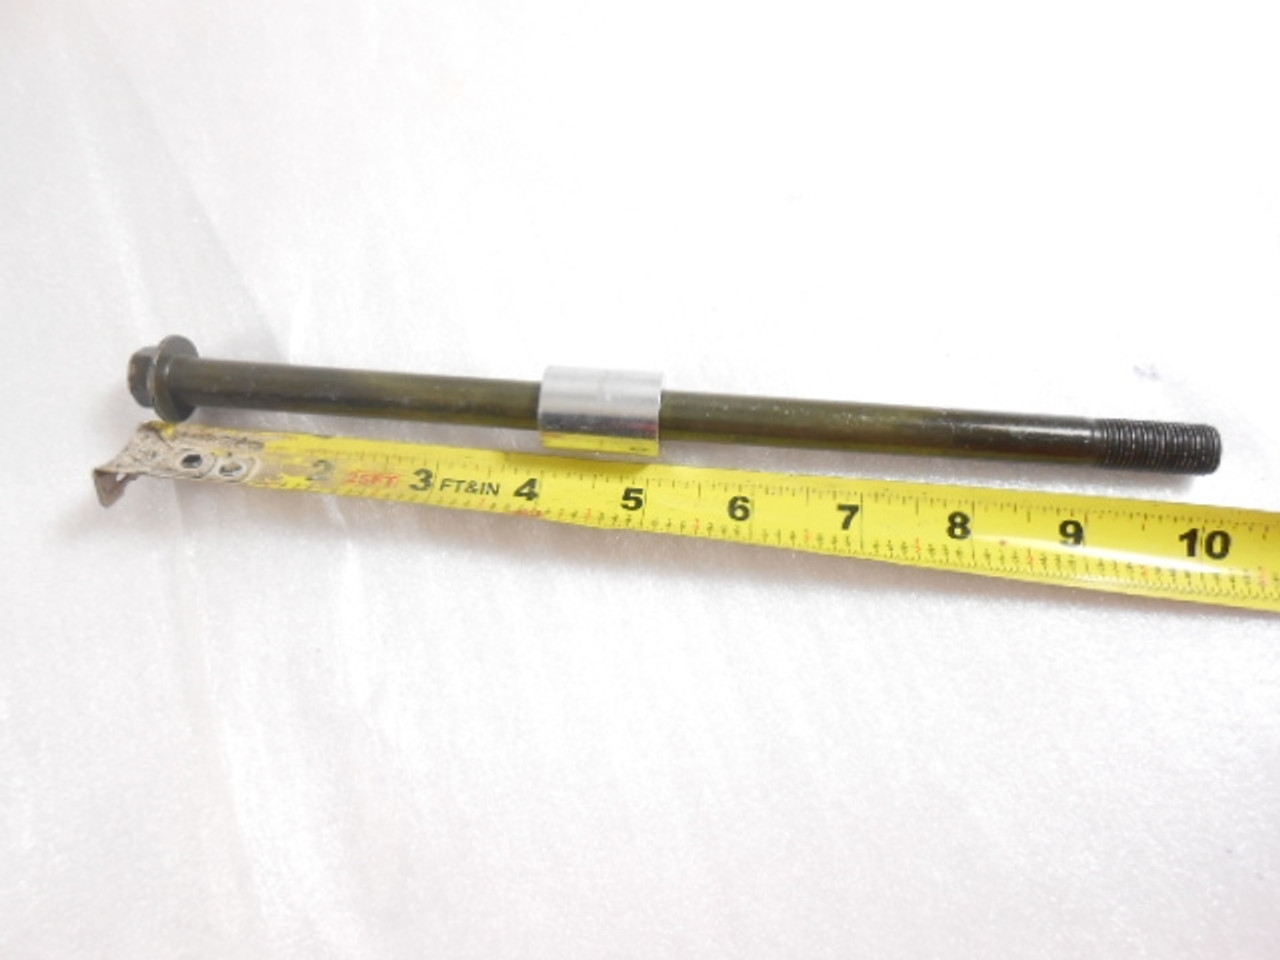 FRONT WHEEL AXLE 12706-A151-6